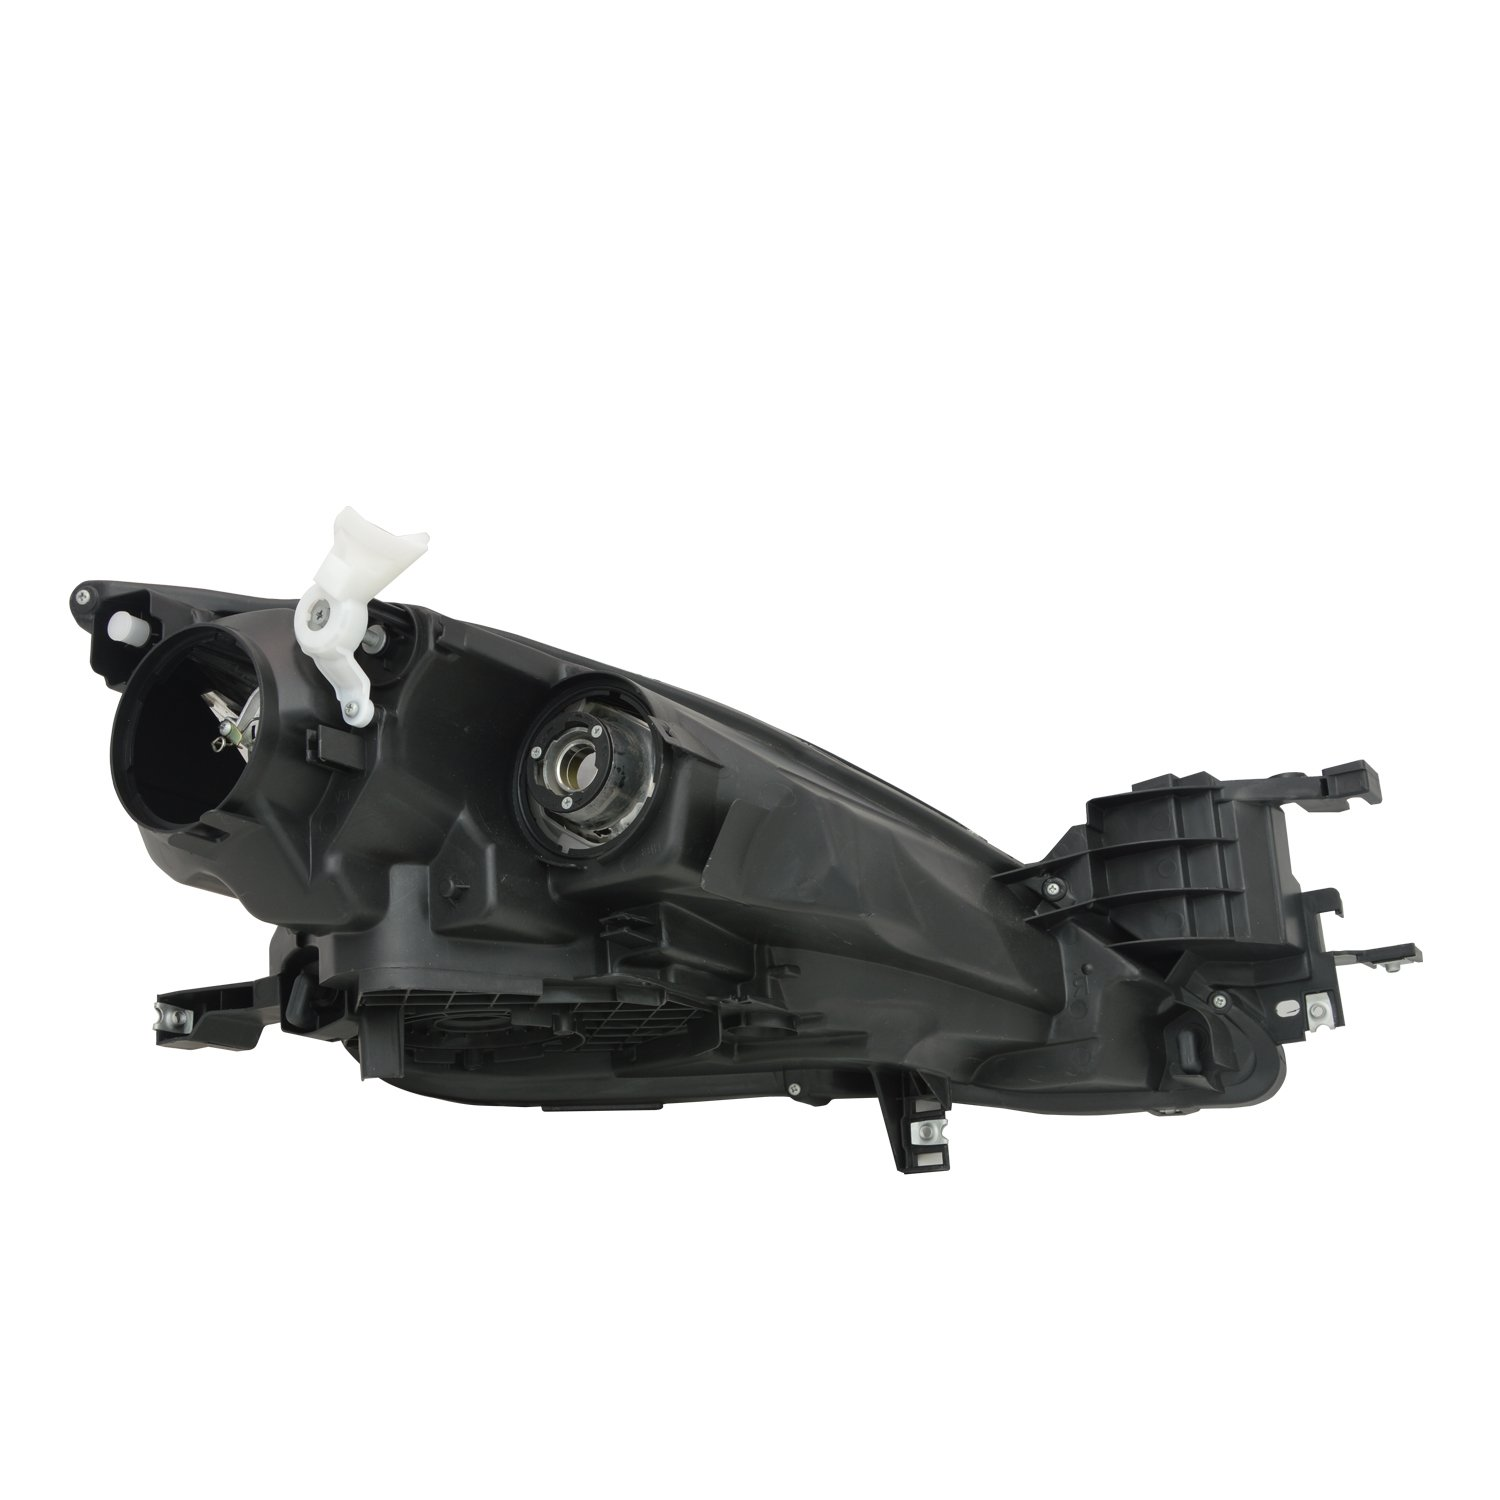 TYC 20-9235-01-9 For MAZDA6 Right Replacement Head Lamp